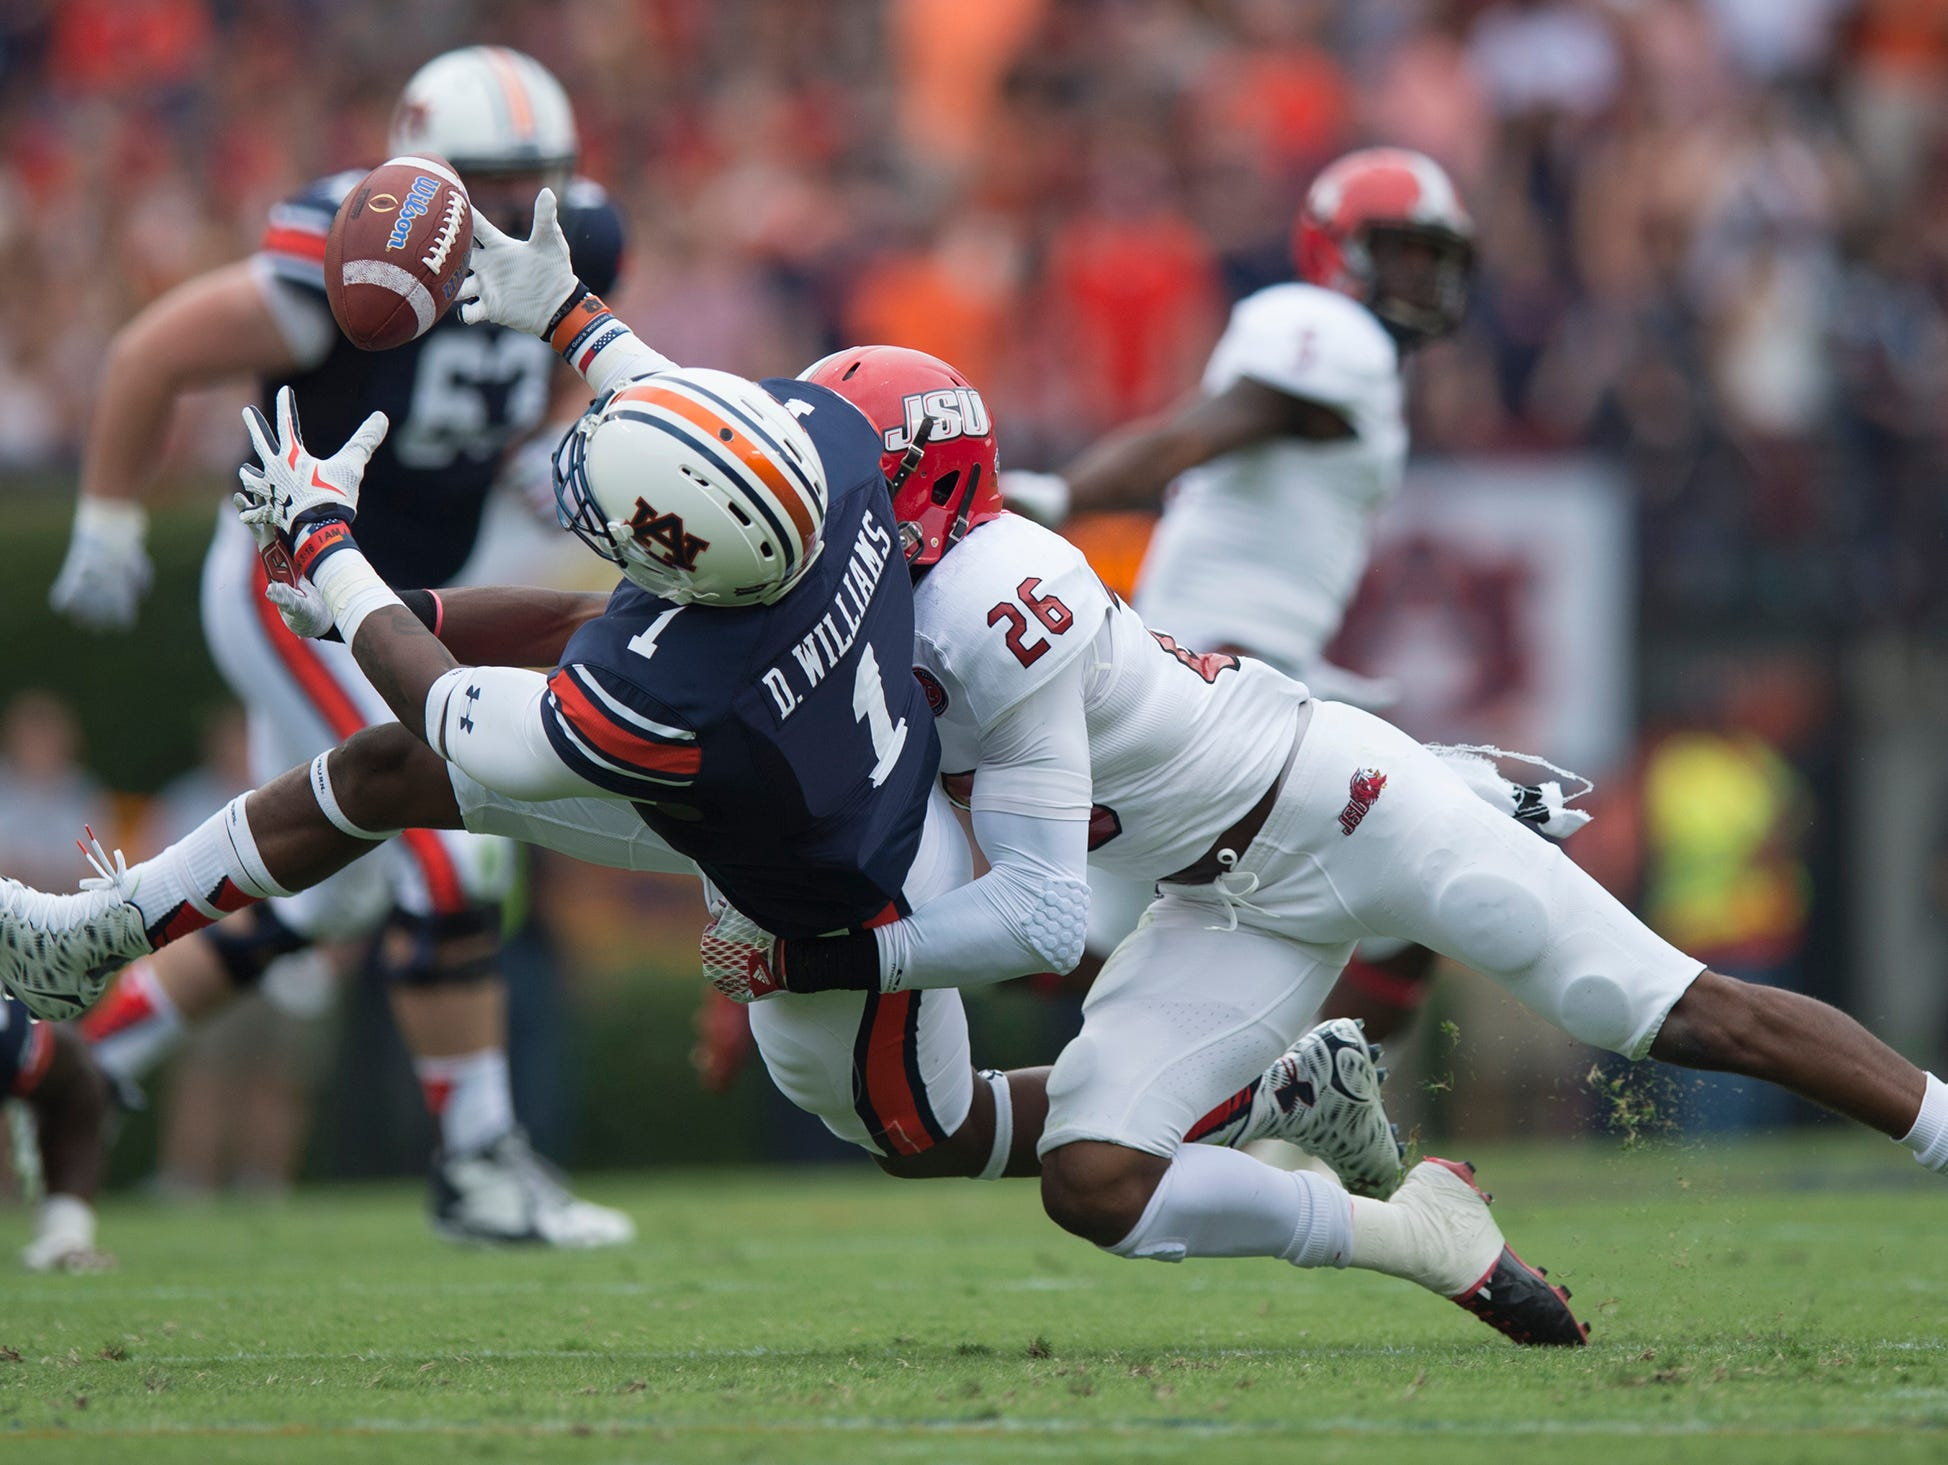 Auburn Tigers wide receiver D'haquille Williams (1) drops a pass as Jacksonville State Gamecocks safety Santavious Oden (26) hits him during the first half of the NCAA Auburn vs. Jacksonville State on Saturday, Sept. 12, 2015, in at Jordan-Hare Stadium in Auburn, Ala. Albert Cesare / Advertiser